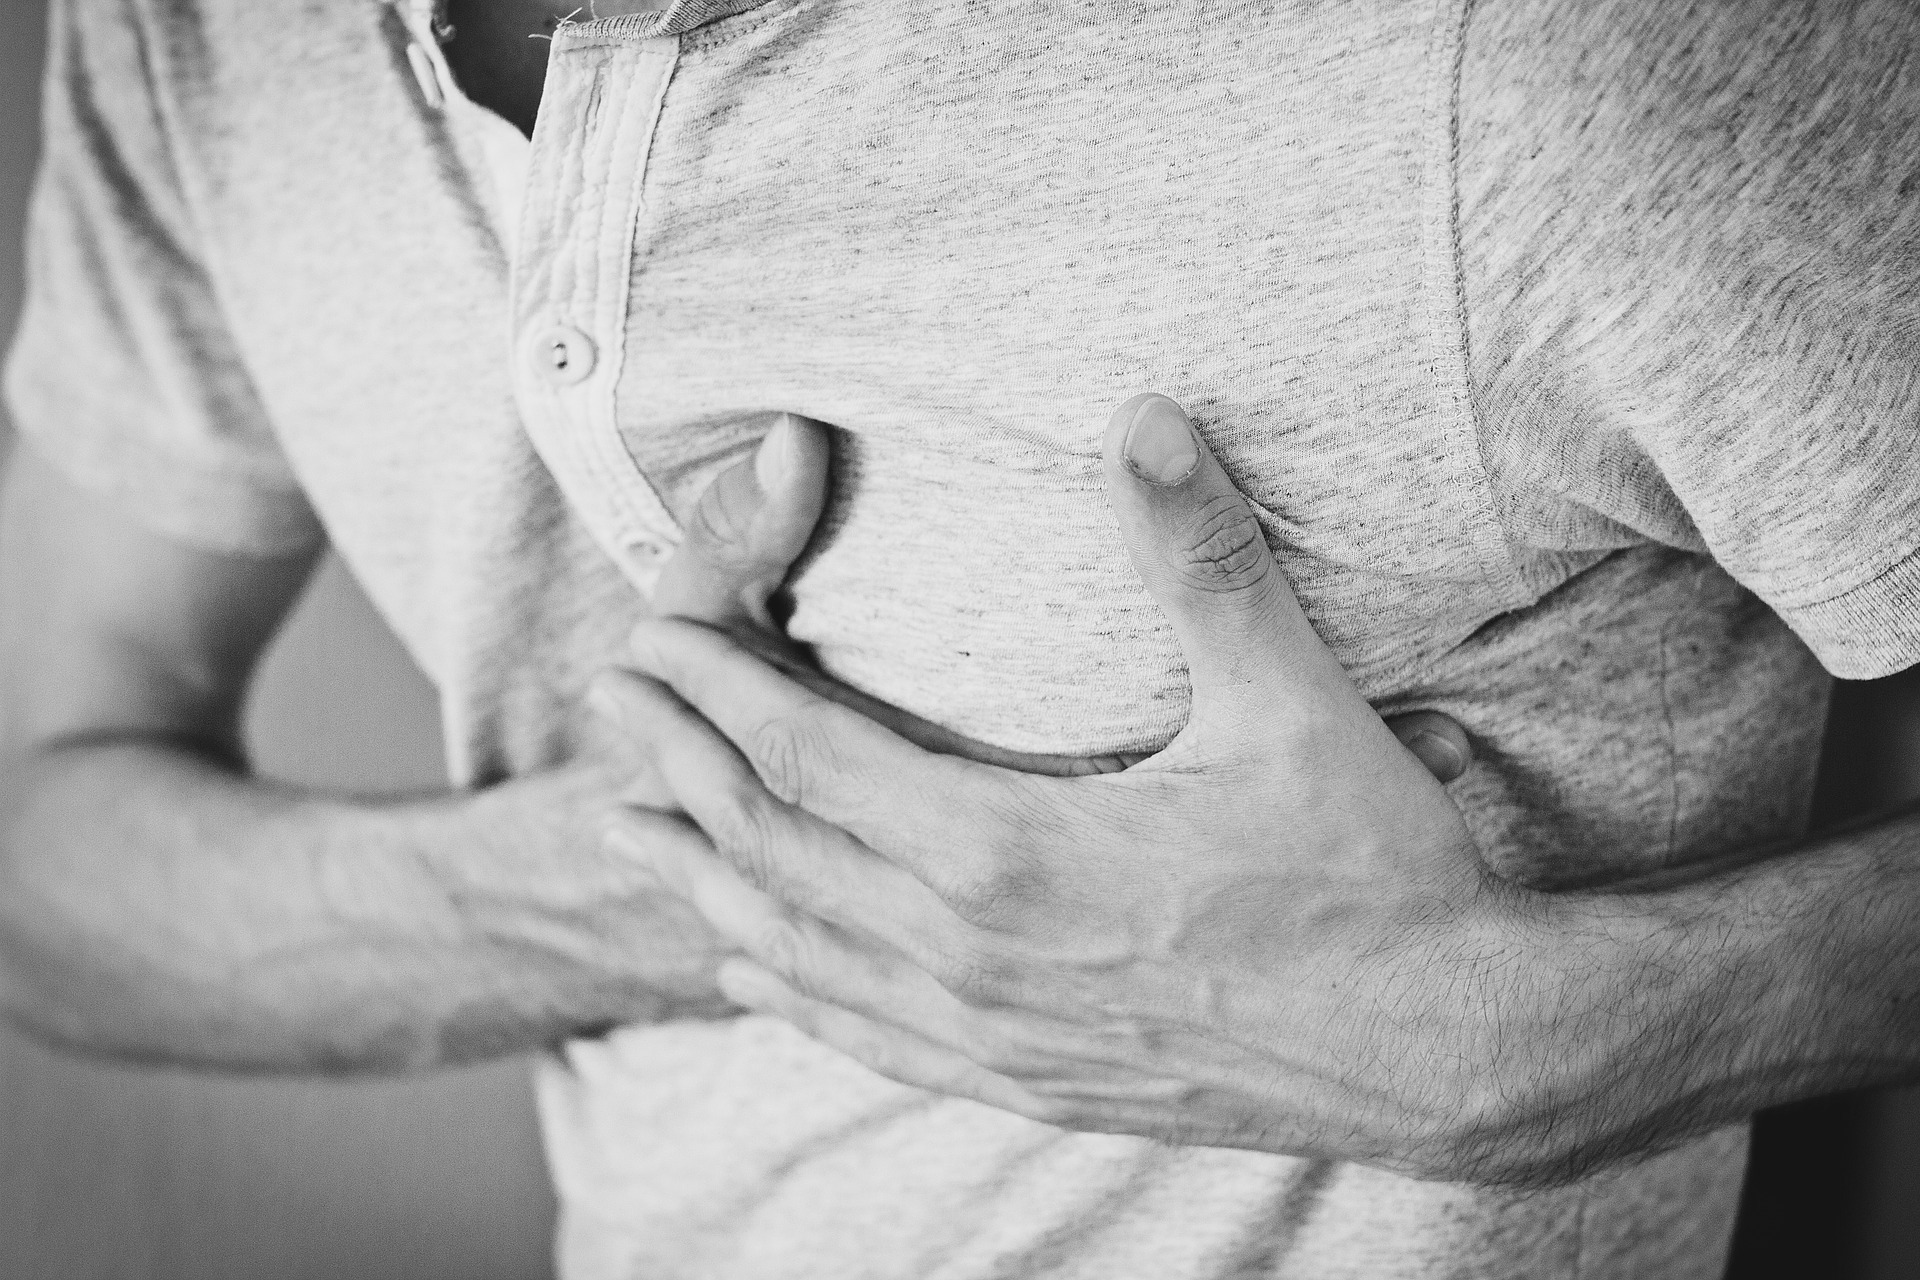 Diclofenac could increase heart failure